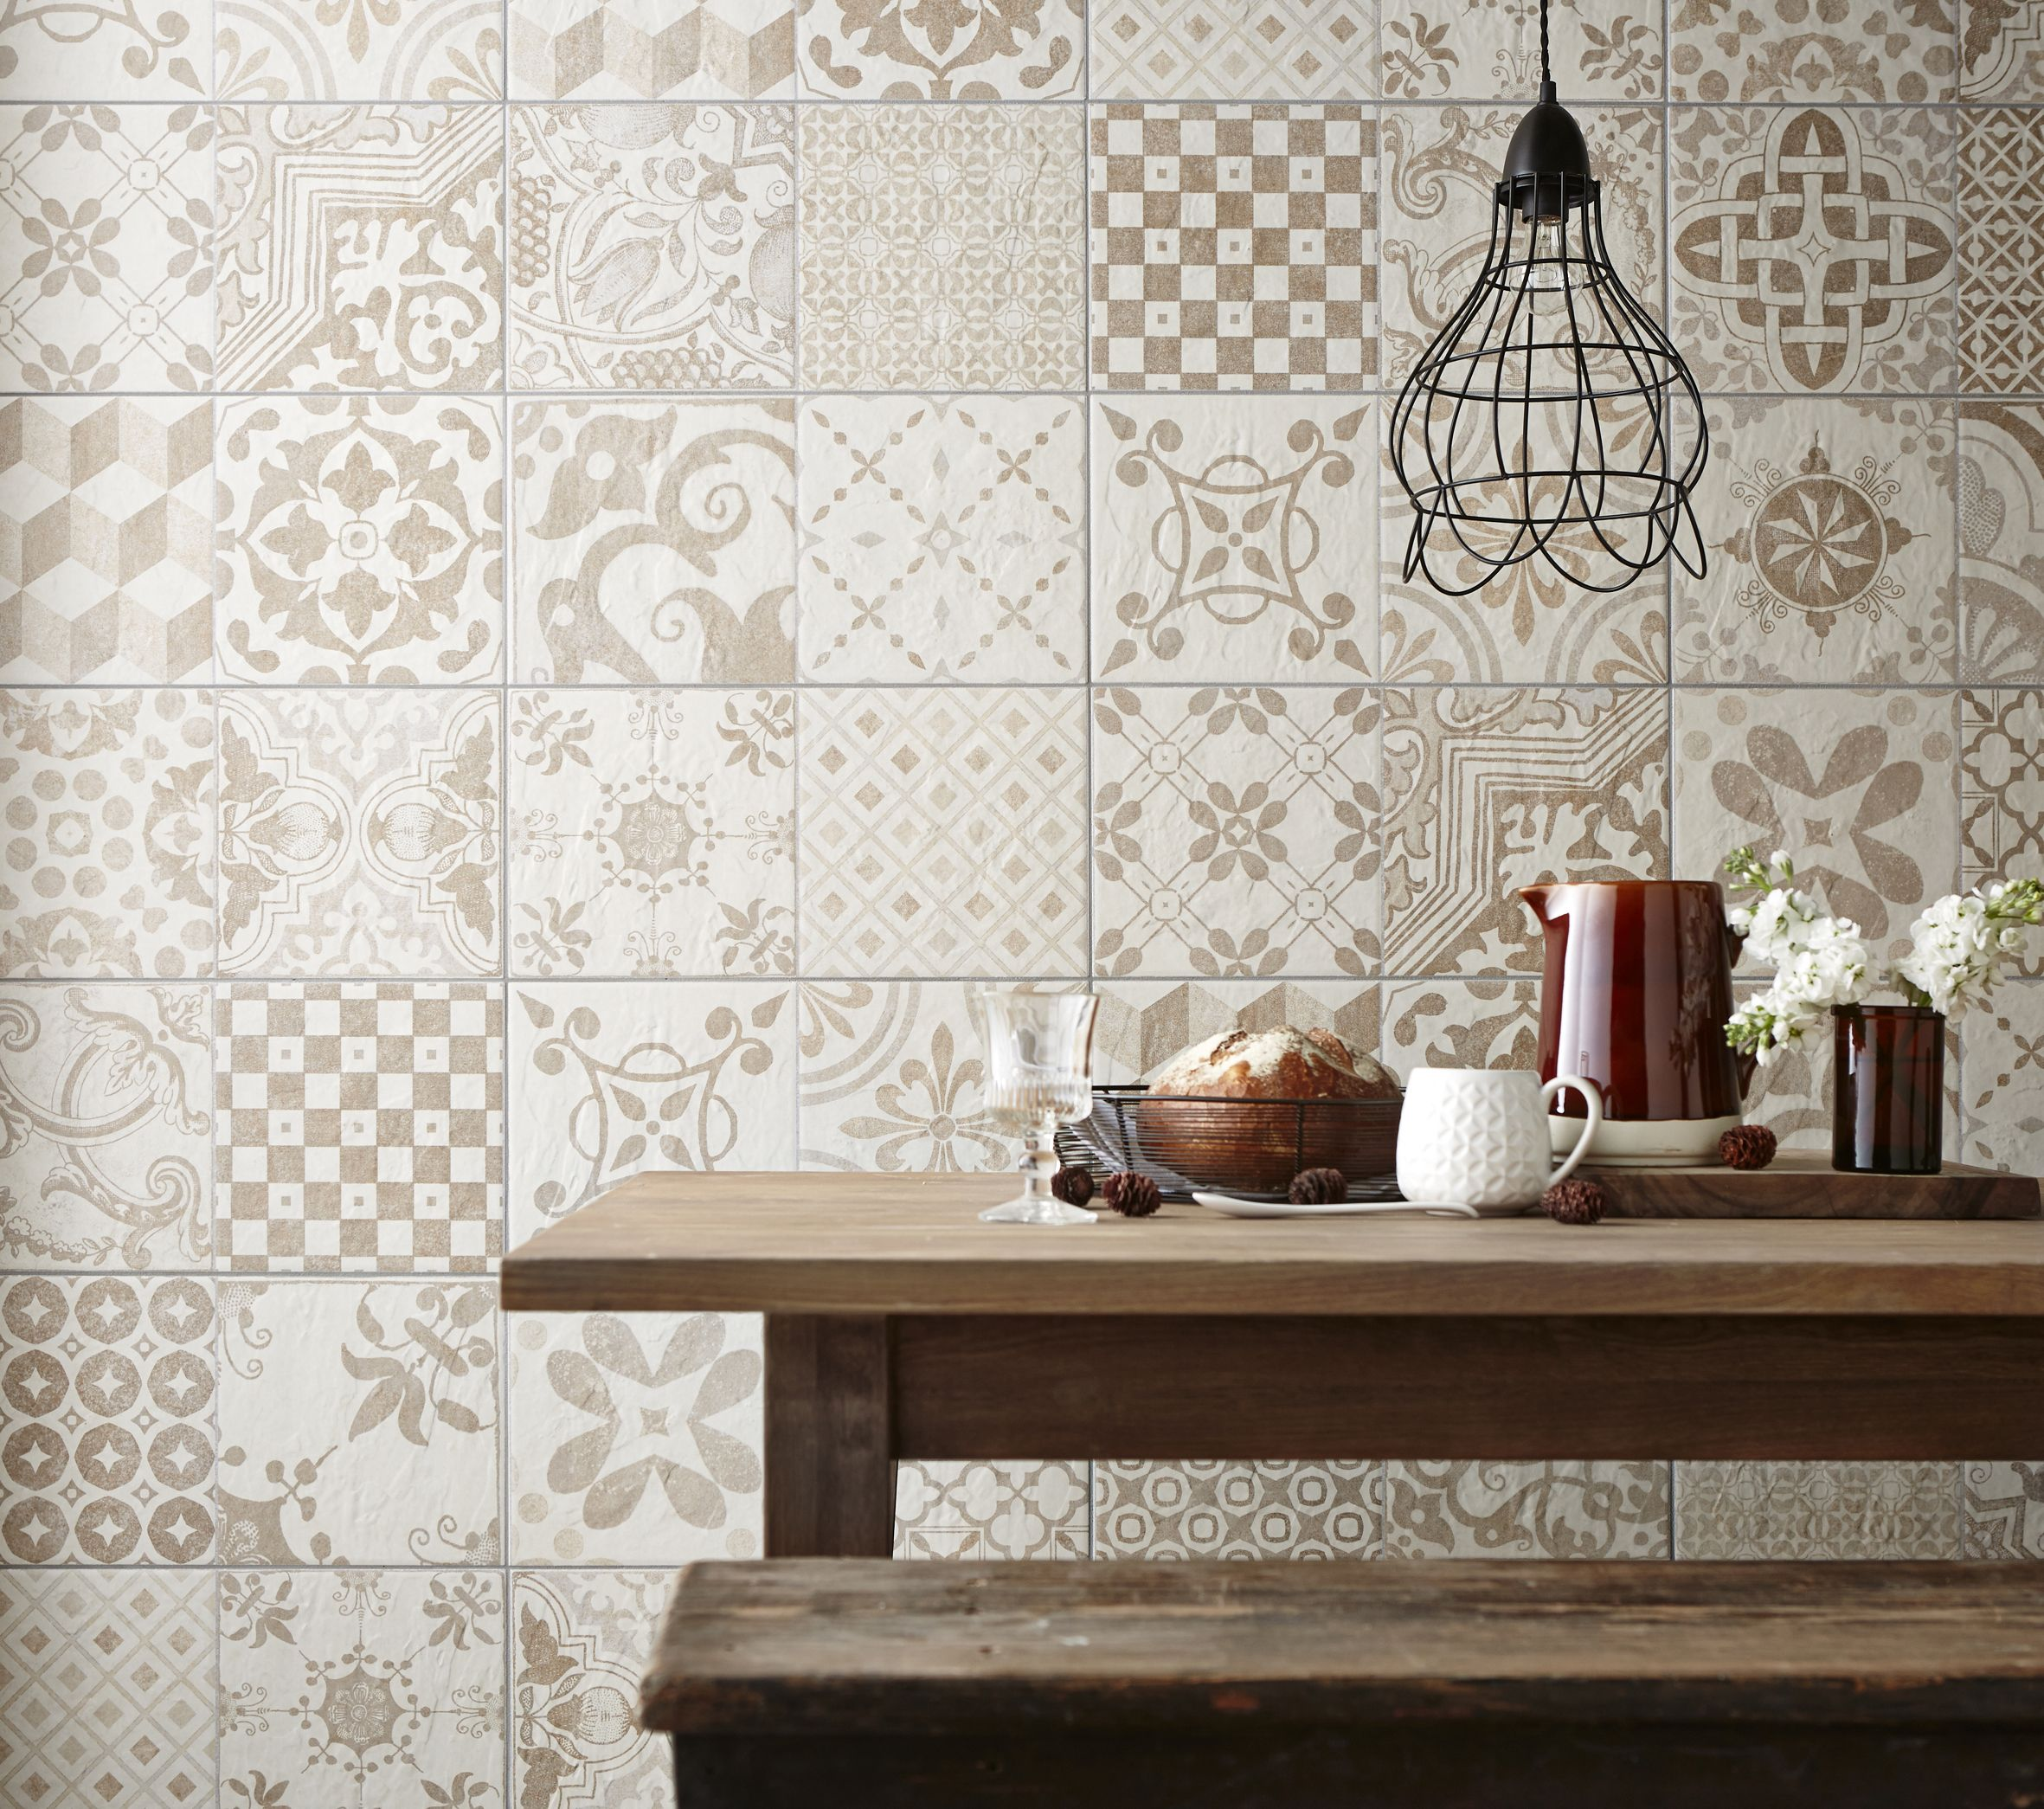 Bristol Vintage Wall And Floor Tiles Only 163 14 96 Per Sq M